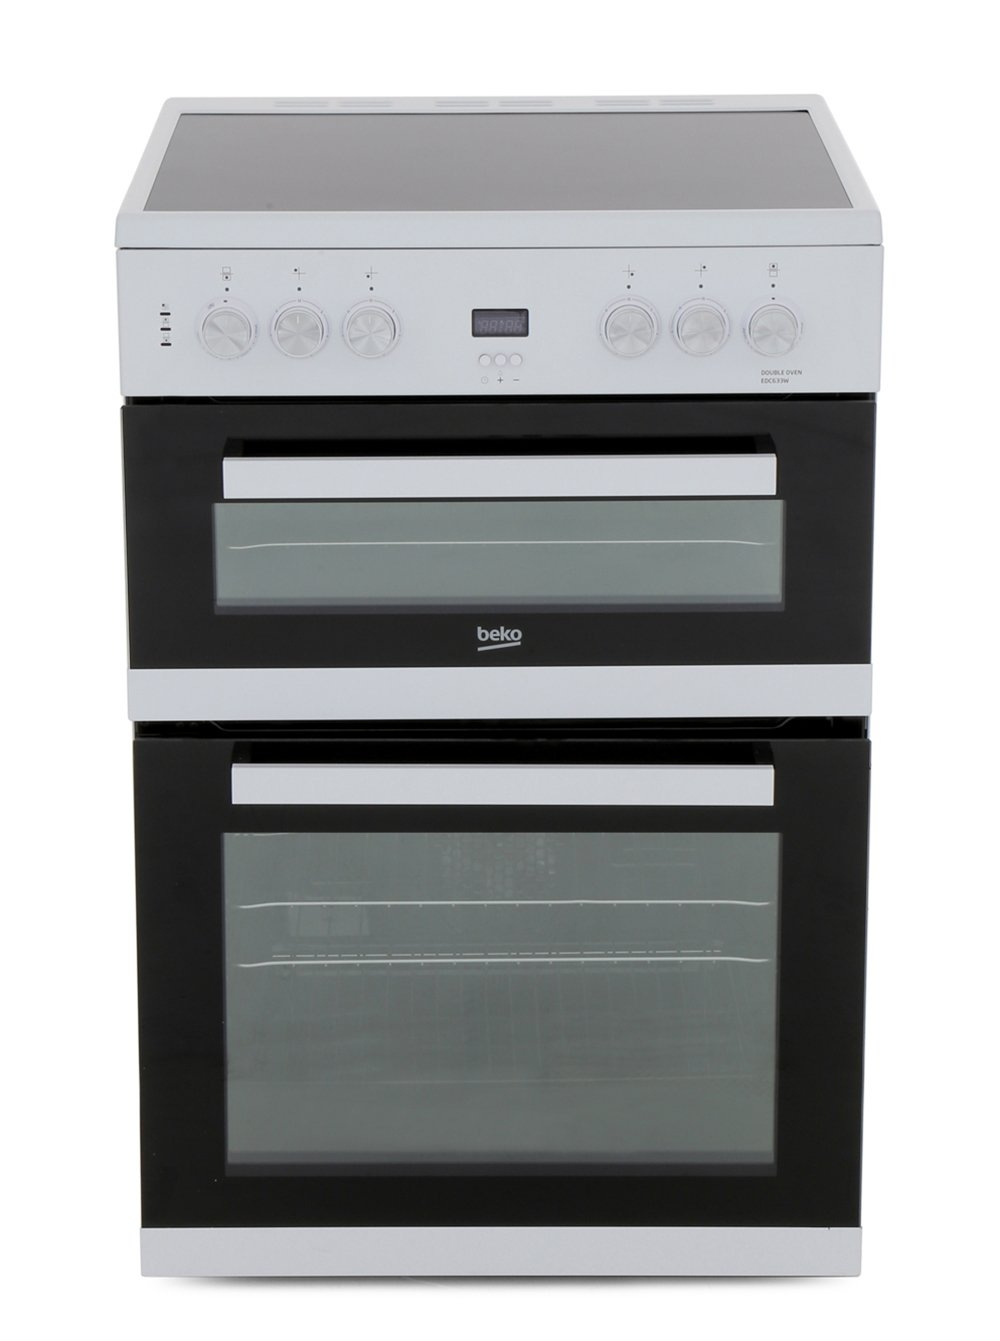 Beko EDC633W Ceramic Electric Cooker with Double Oven